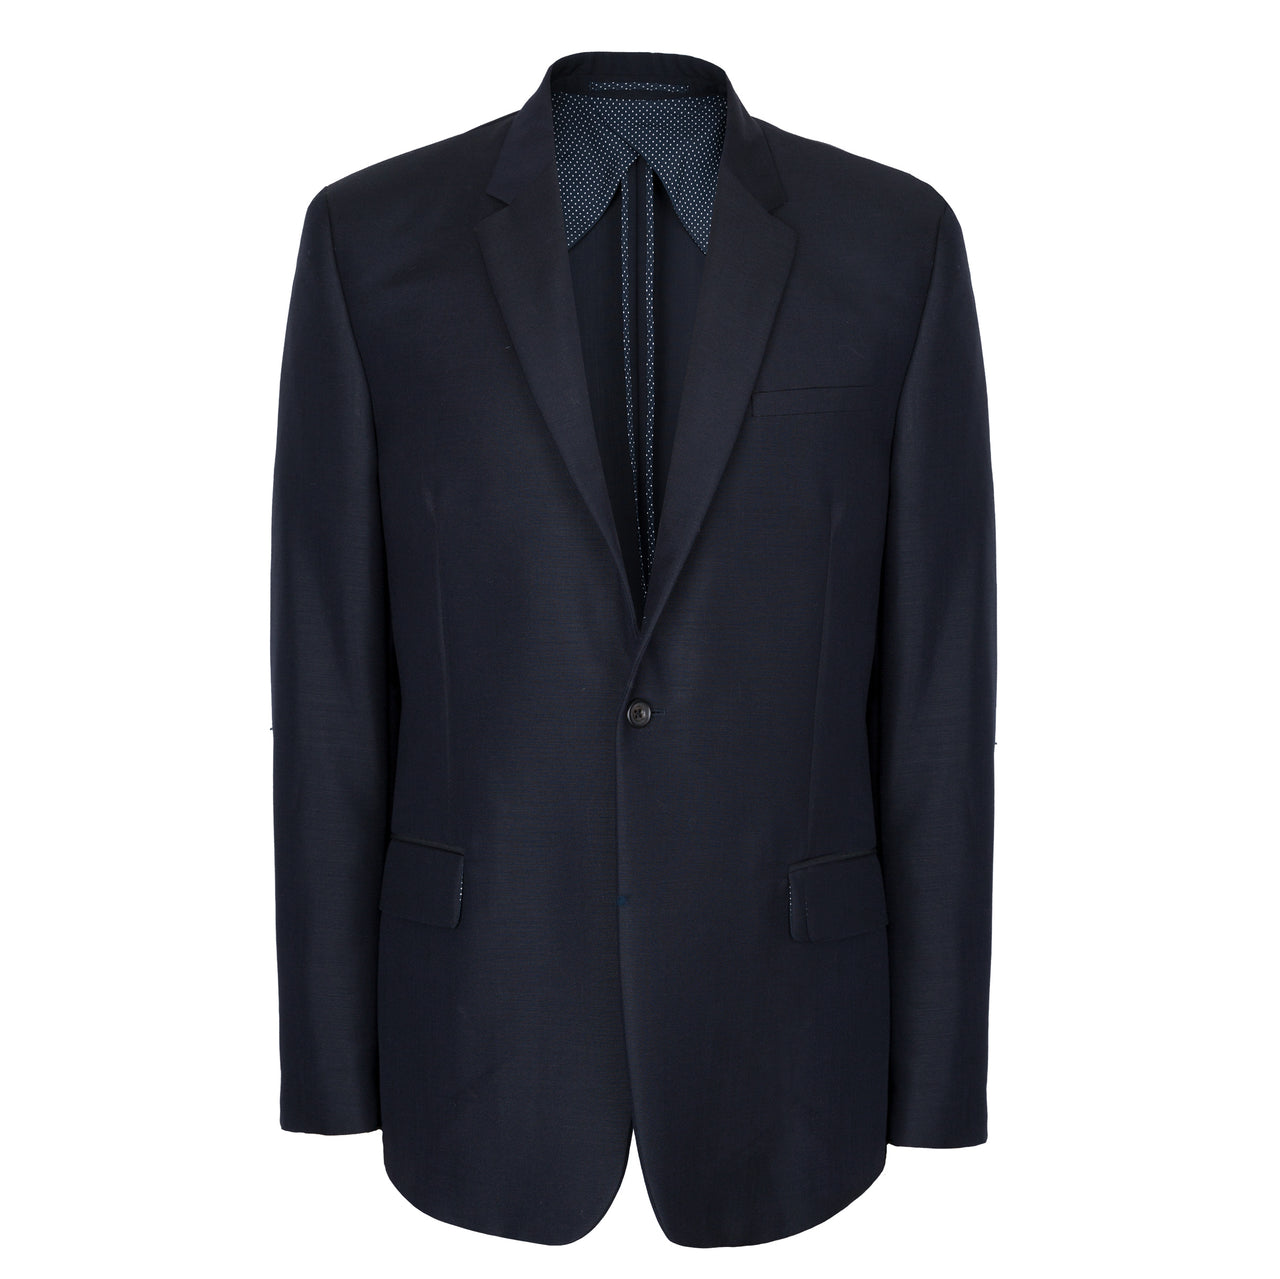 Navy Blue Wool & Mohair Tailored Jacket